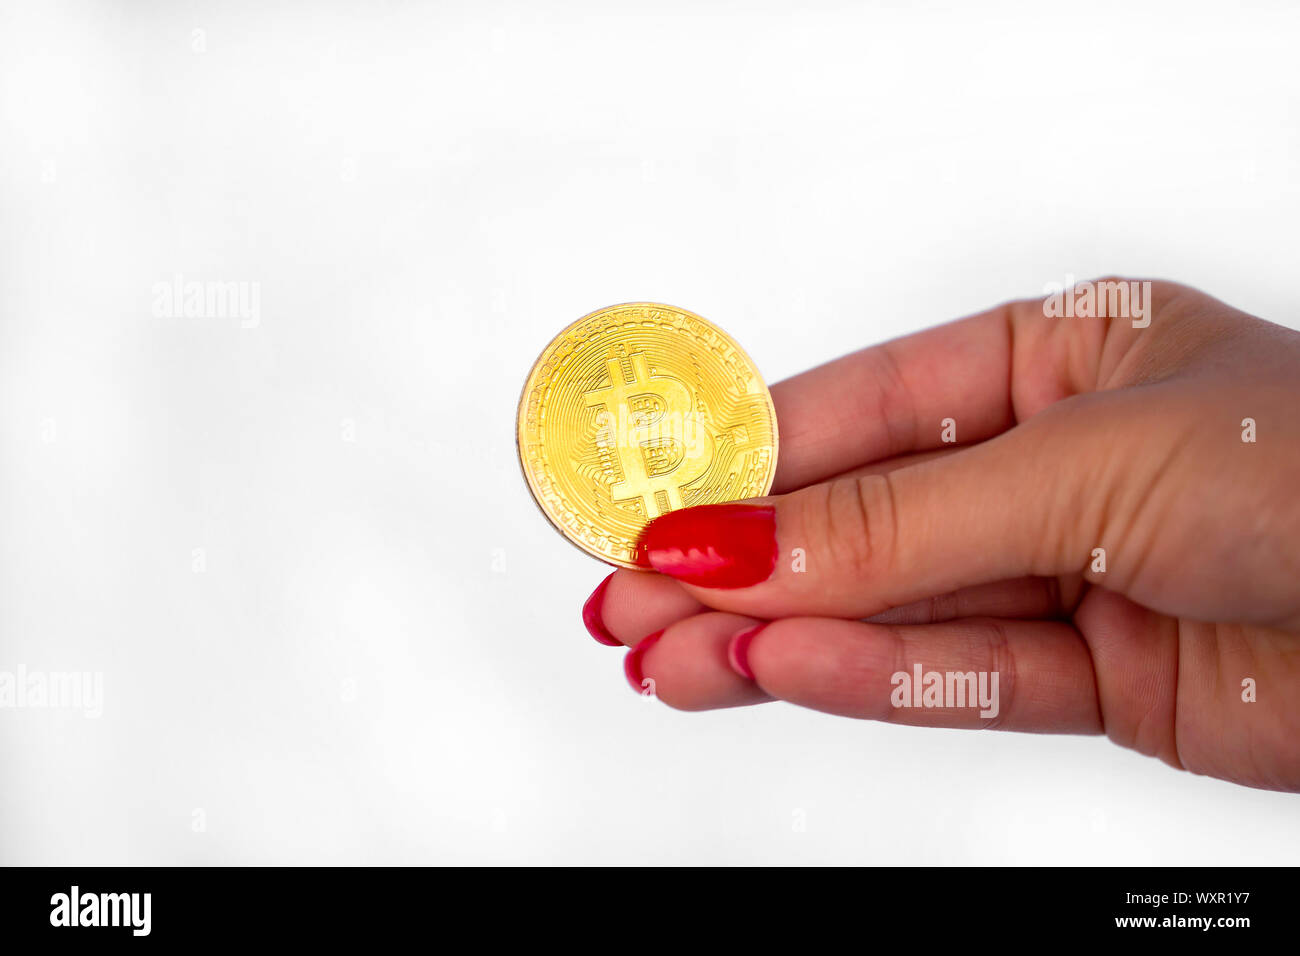 Virtual cryptocurrency money Bitcoin golden coin in the right hand of a woman with red nail polish. The future of money. Isolated on a white backgroun Stock Photo